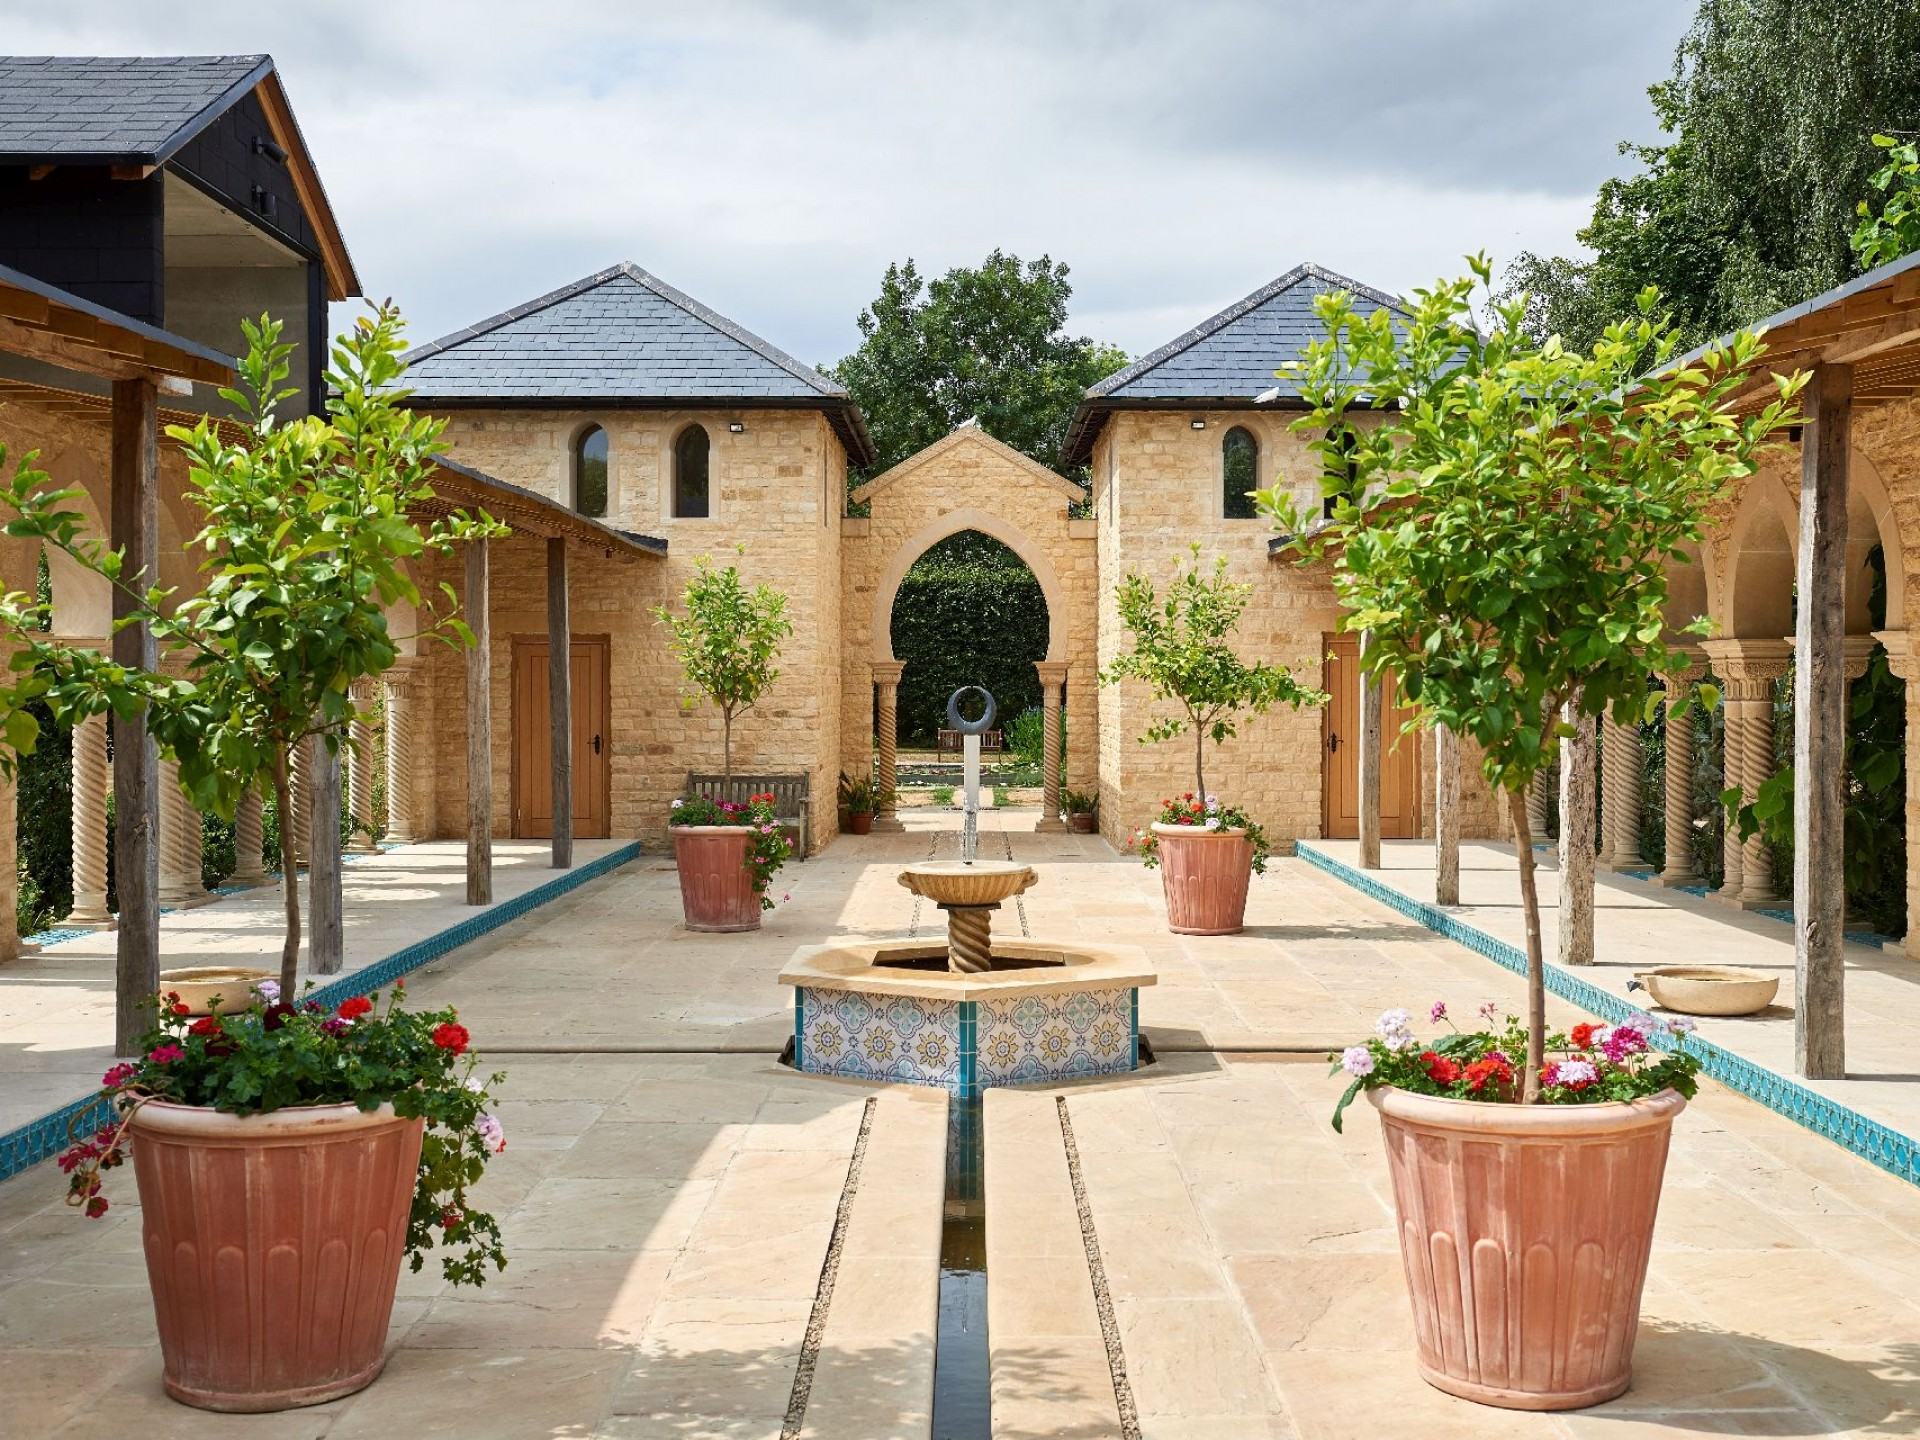 The Pavilion Courtyard